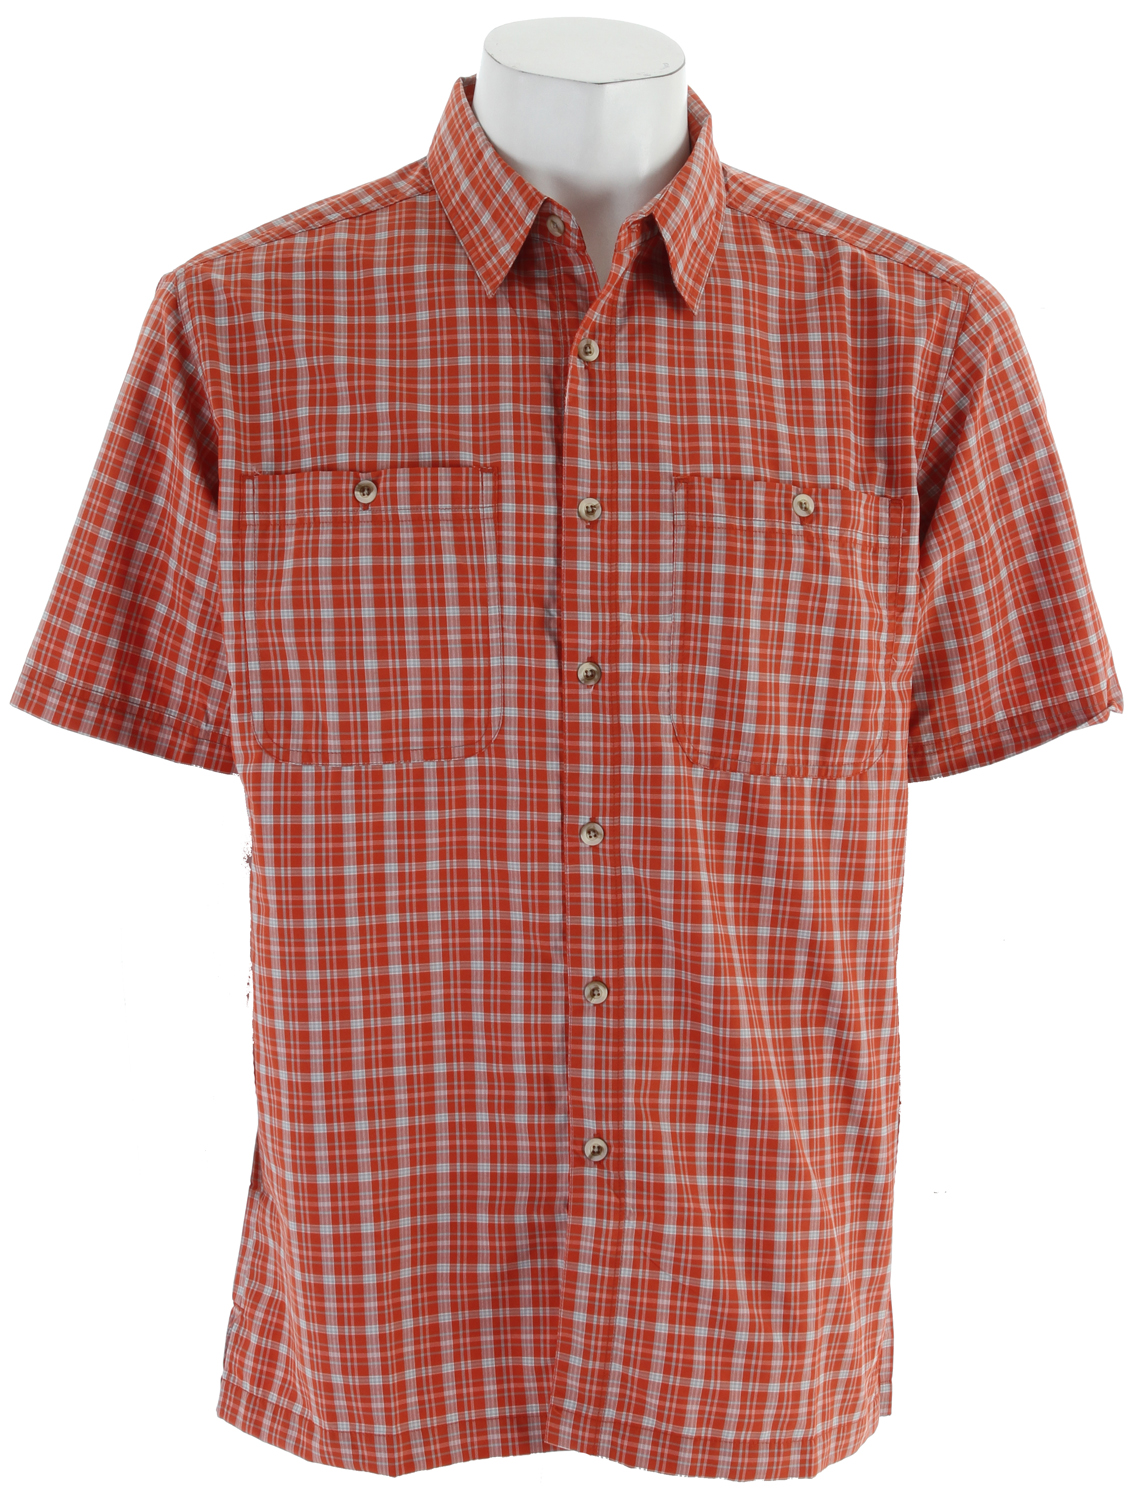 "Throw on the Richmond Point Short Sleeve Shirt for all your long afternoon walks. No matter at the local restaurant or your backyard bbq, this classic plaid will keep you cool with the sun on your back.Key Features of the White Sierra Richmond Point Shirt: 64% nylon 36% polyester woven plaid UPF 30 Wicking 2 chest pockets 31.5"" back length - $32.45"